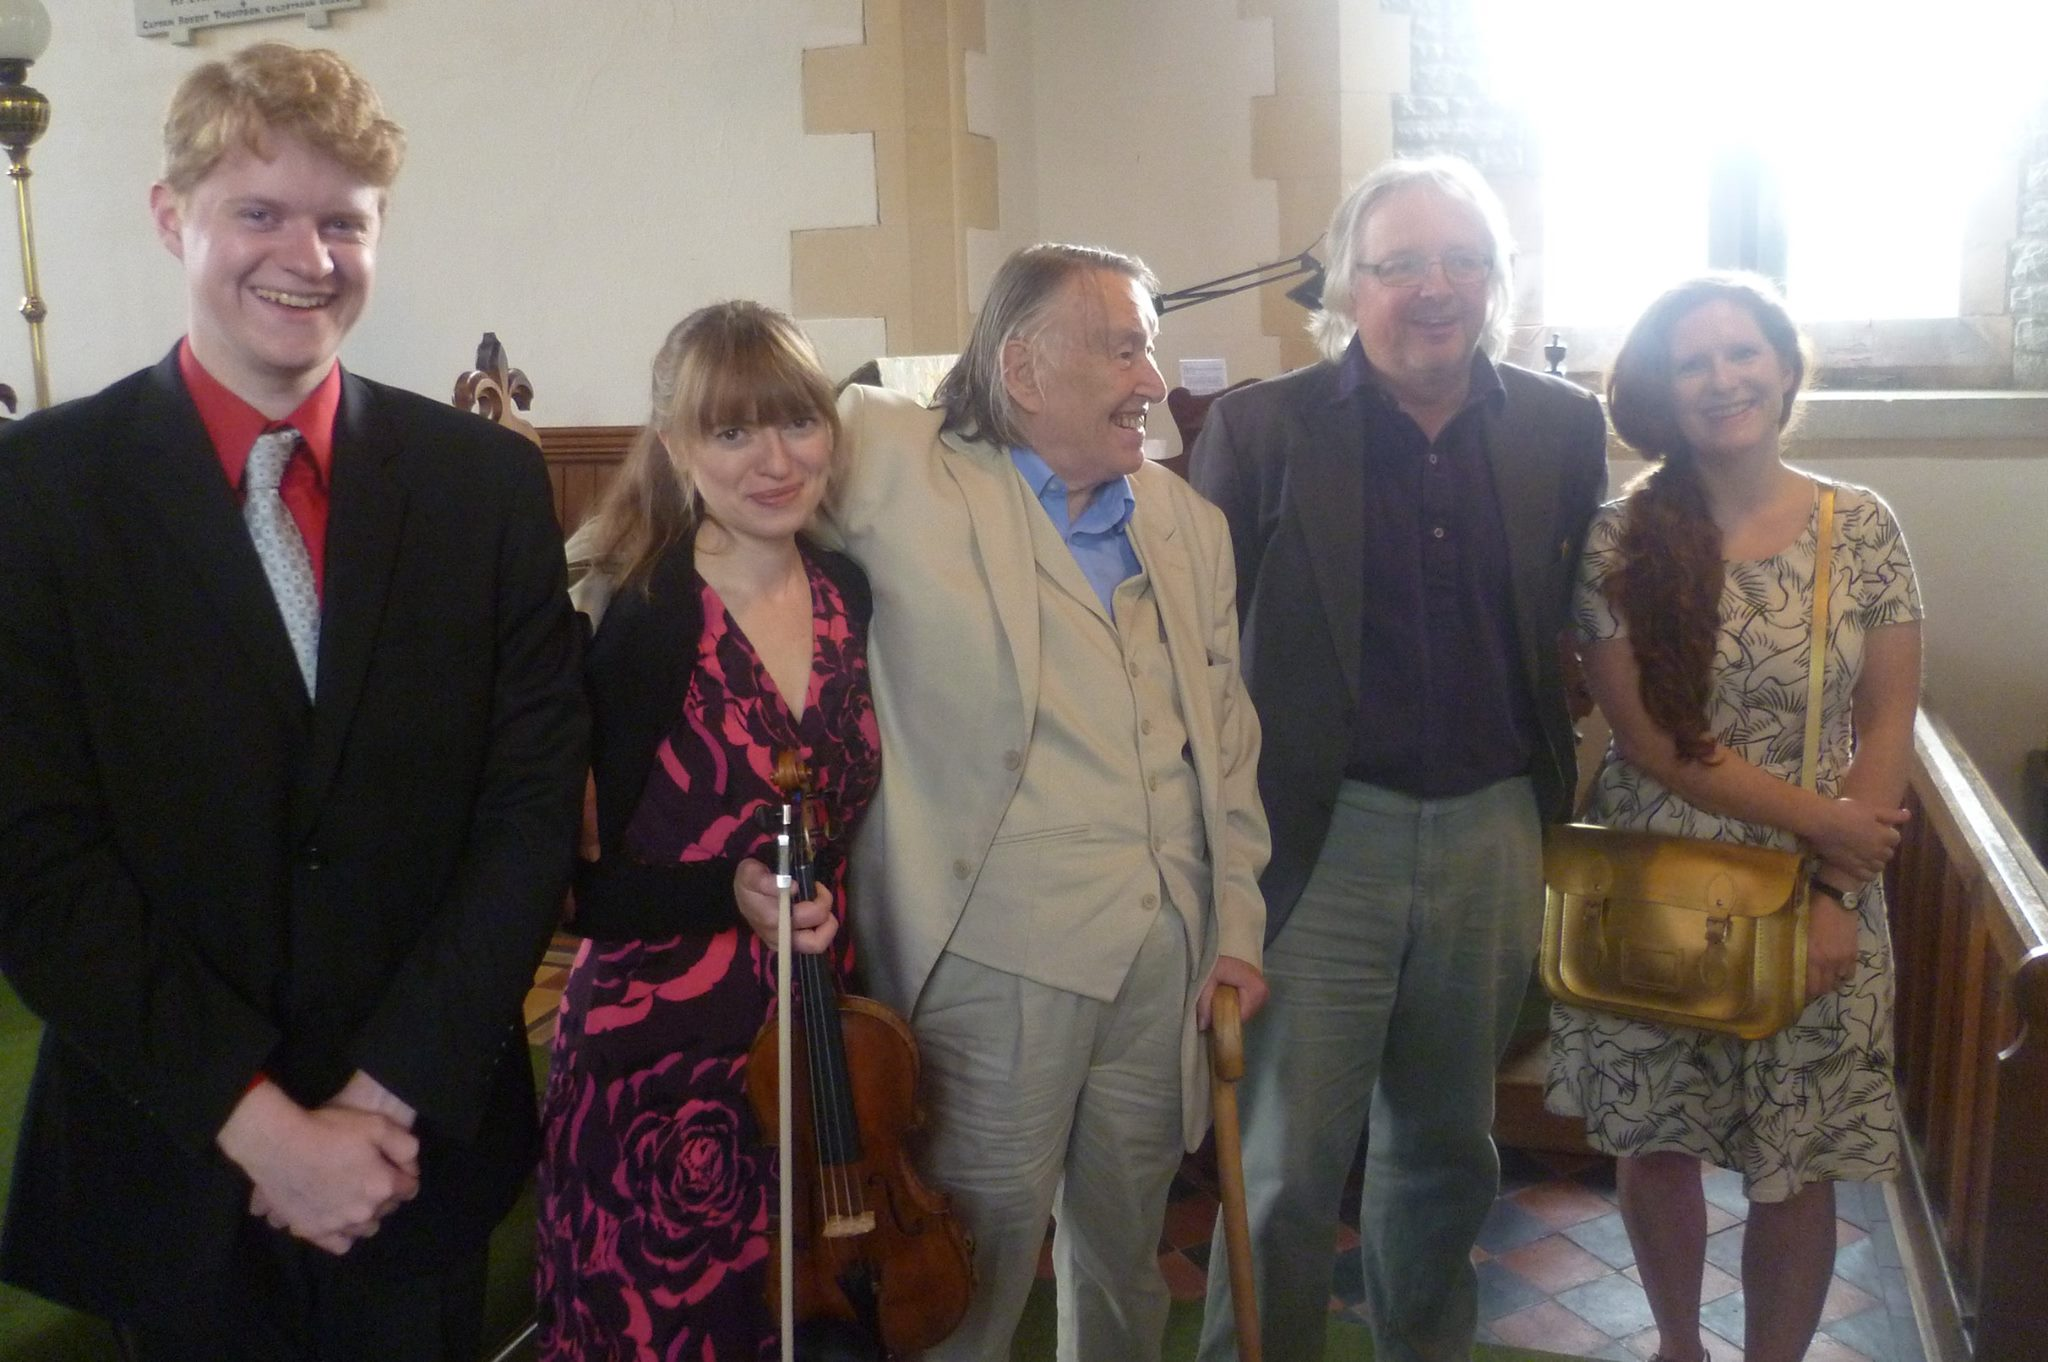 Michael with other composers at Presteigne - L to R: BBC Music Magazine Award Winner Fenella Humphreys, Gordon Crosse, Piers Hellawell, and Cheryl Frances-Hoad.